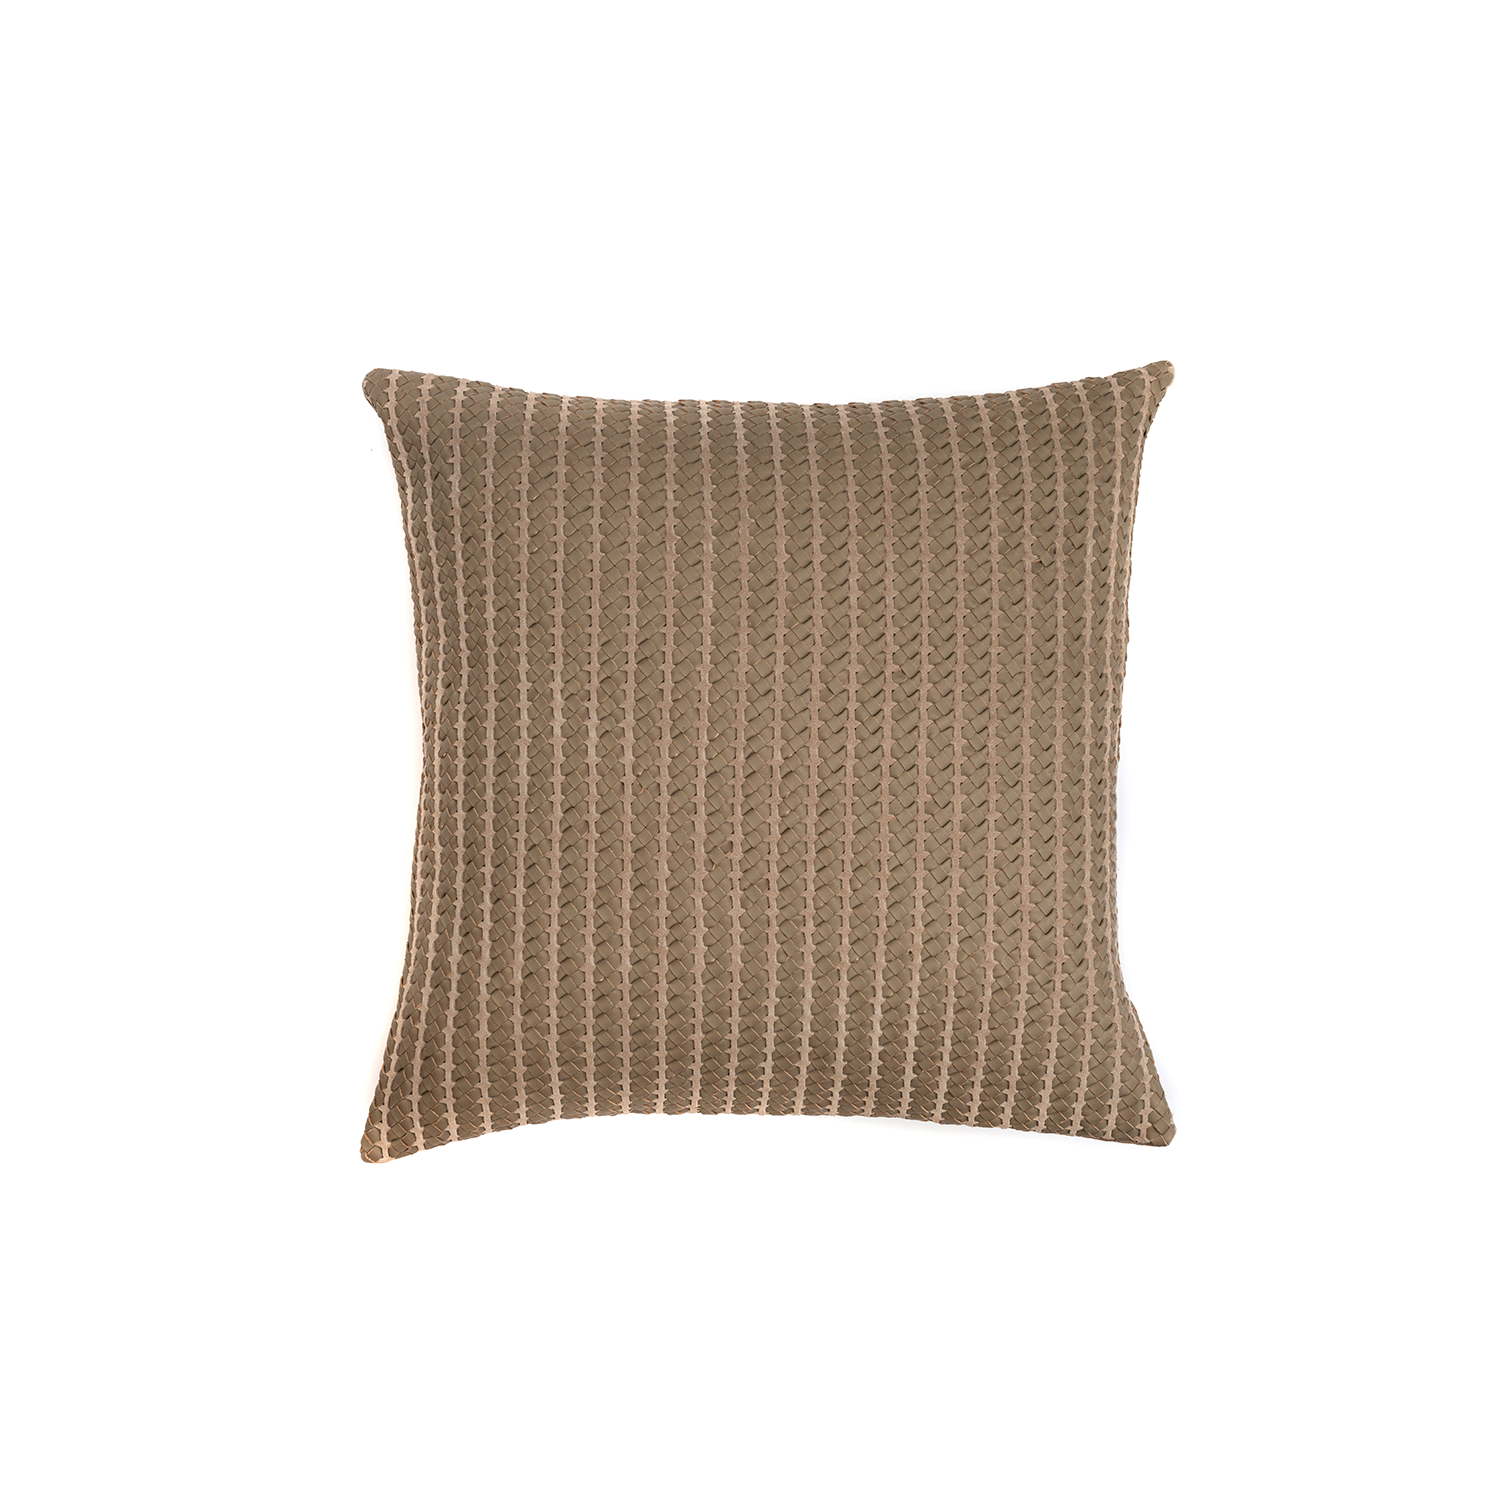 Rib Woven Leather Cushion Square - The Rib Woven Leather Cushion is designed to complement an ambient with a natural and sophisticated feeling. This cushion style is available in pleated leather or pleated suede leather. Elisa Atheniense woven handmade leather cushions are specially manufactured in Brazil using an exclusive treated leather that brings the soft feel touch to every single piece.   The front panel is handwoven in leather and the back panel is 100% Pes, made in Brazil.  The inner cushion is available in Hollow Fibre and European Duck Feathers, made in the UK.  Please enquire for more information and see colour chart for reference.   | Matter of Stuff